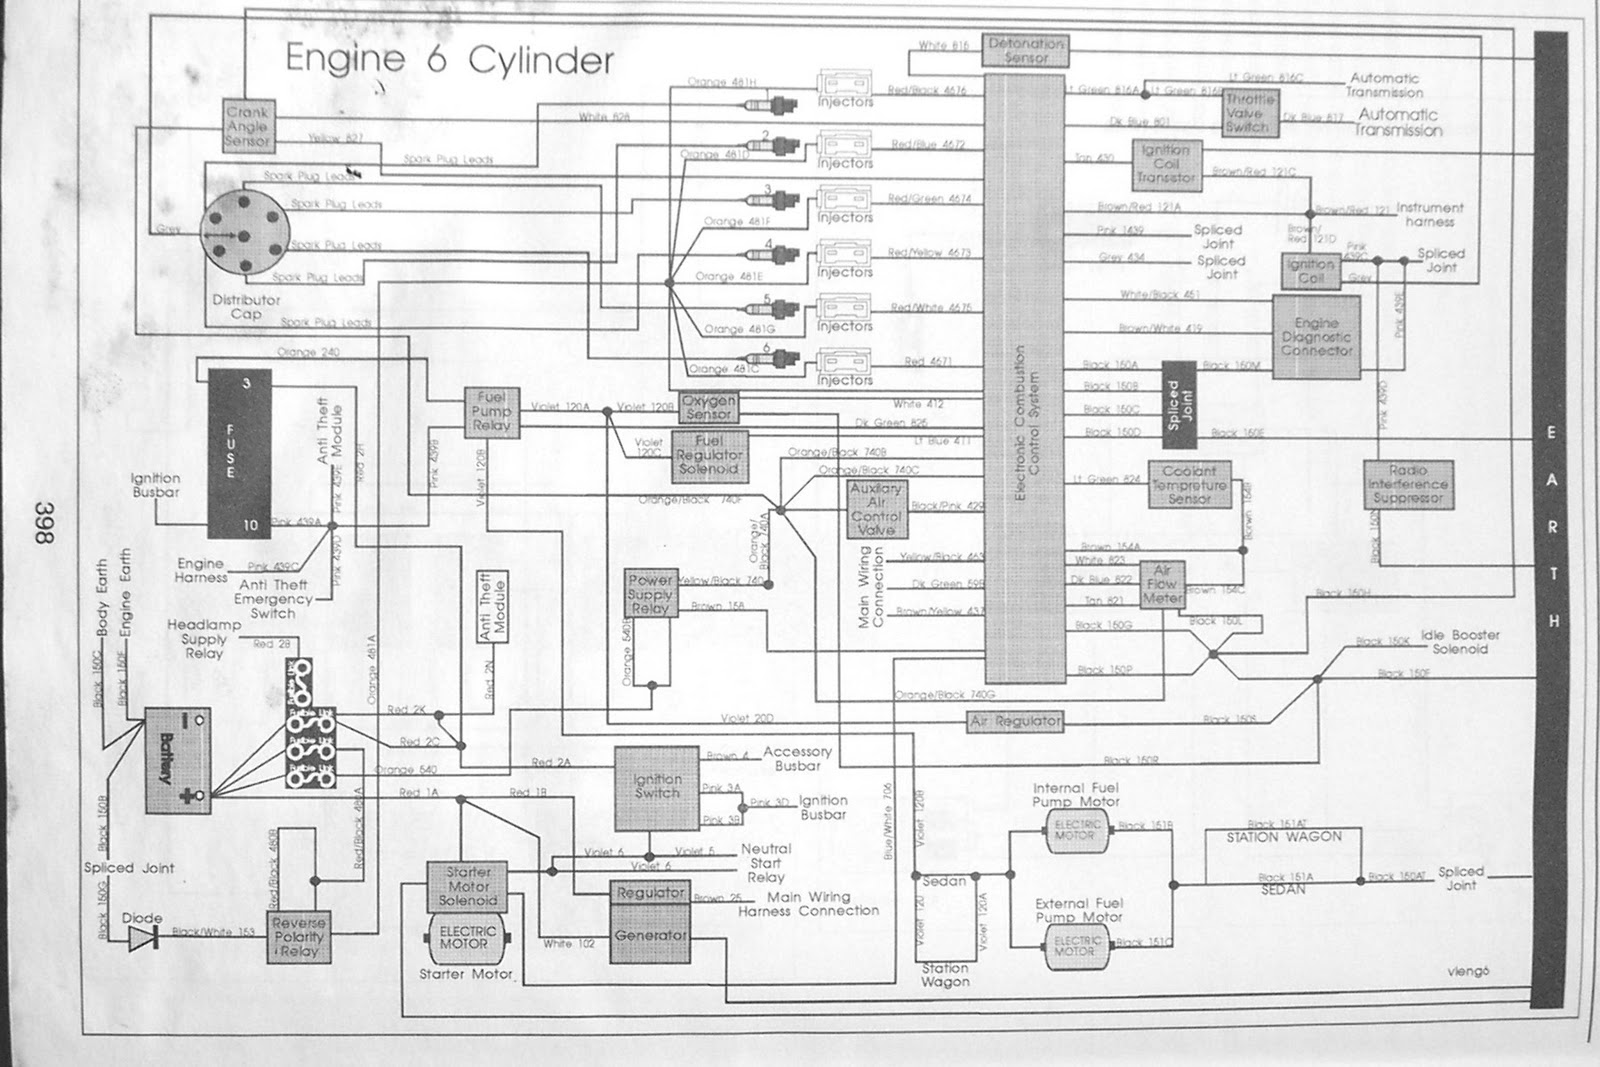 14b vt commodore wiring diagram efcaviation com vz wiring diagram at gsmx.co